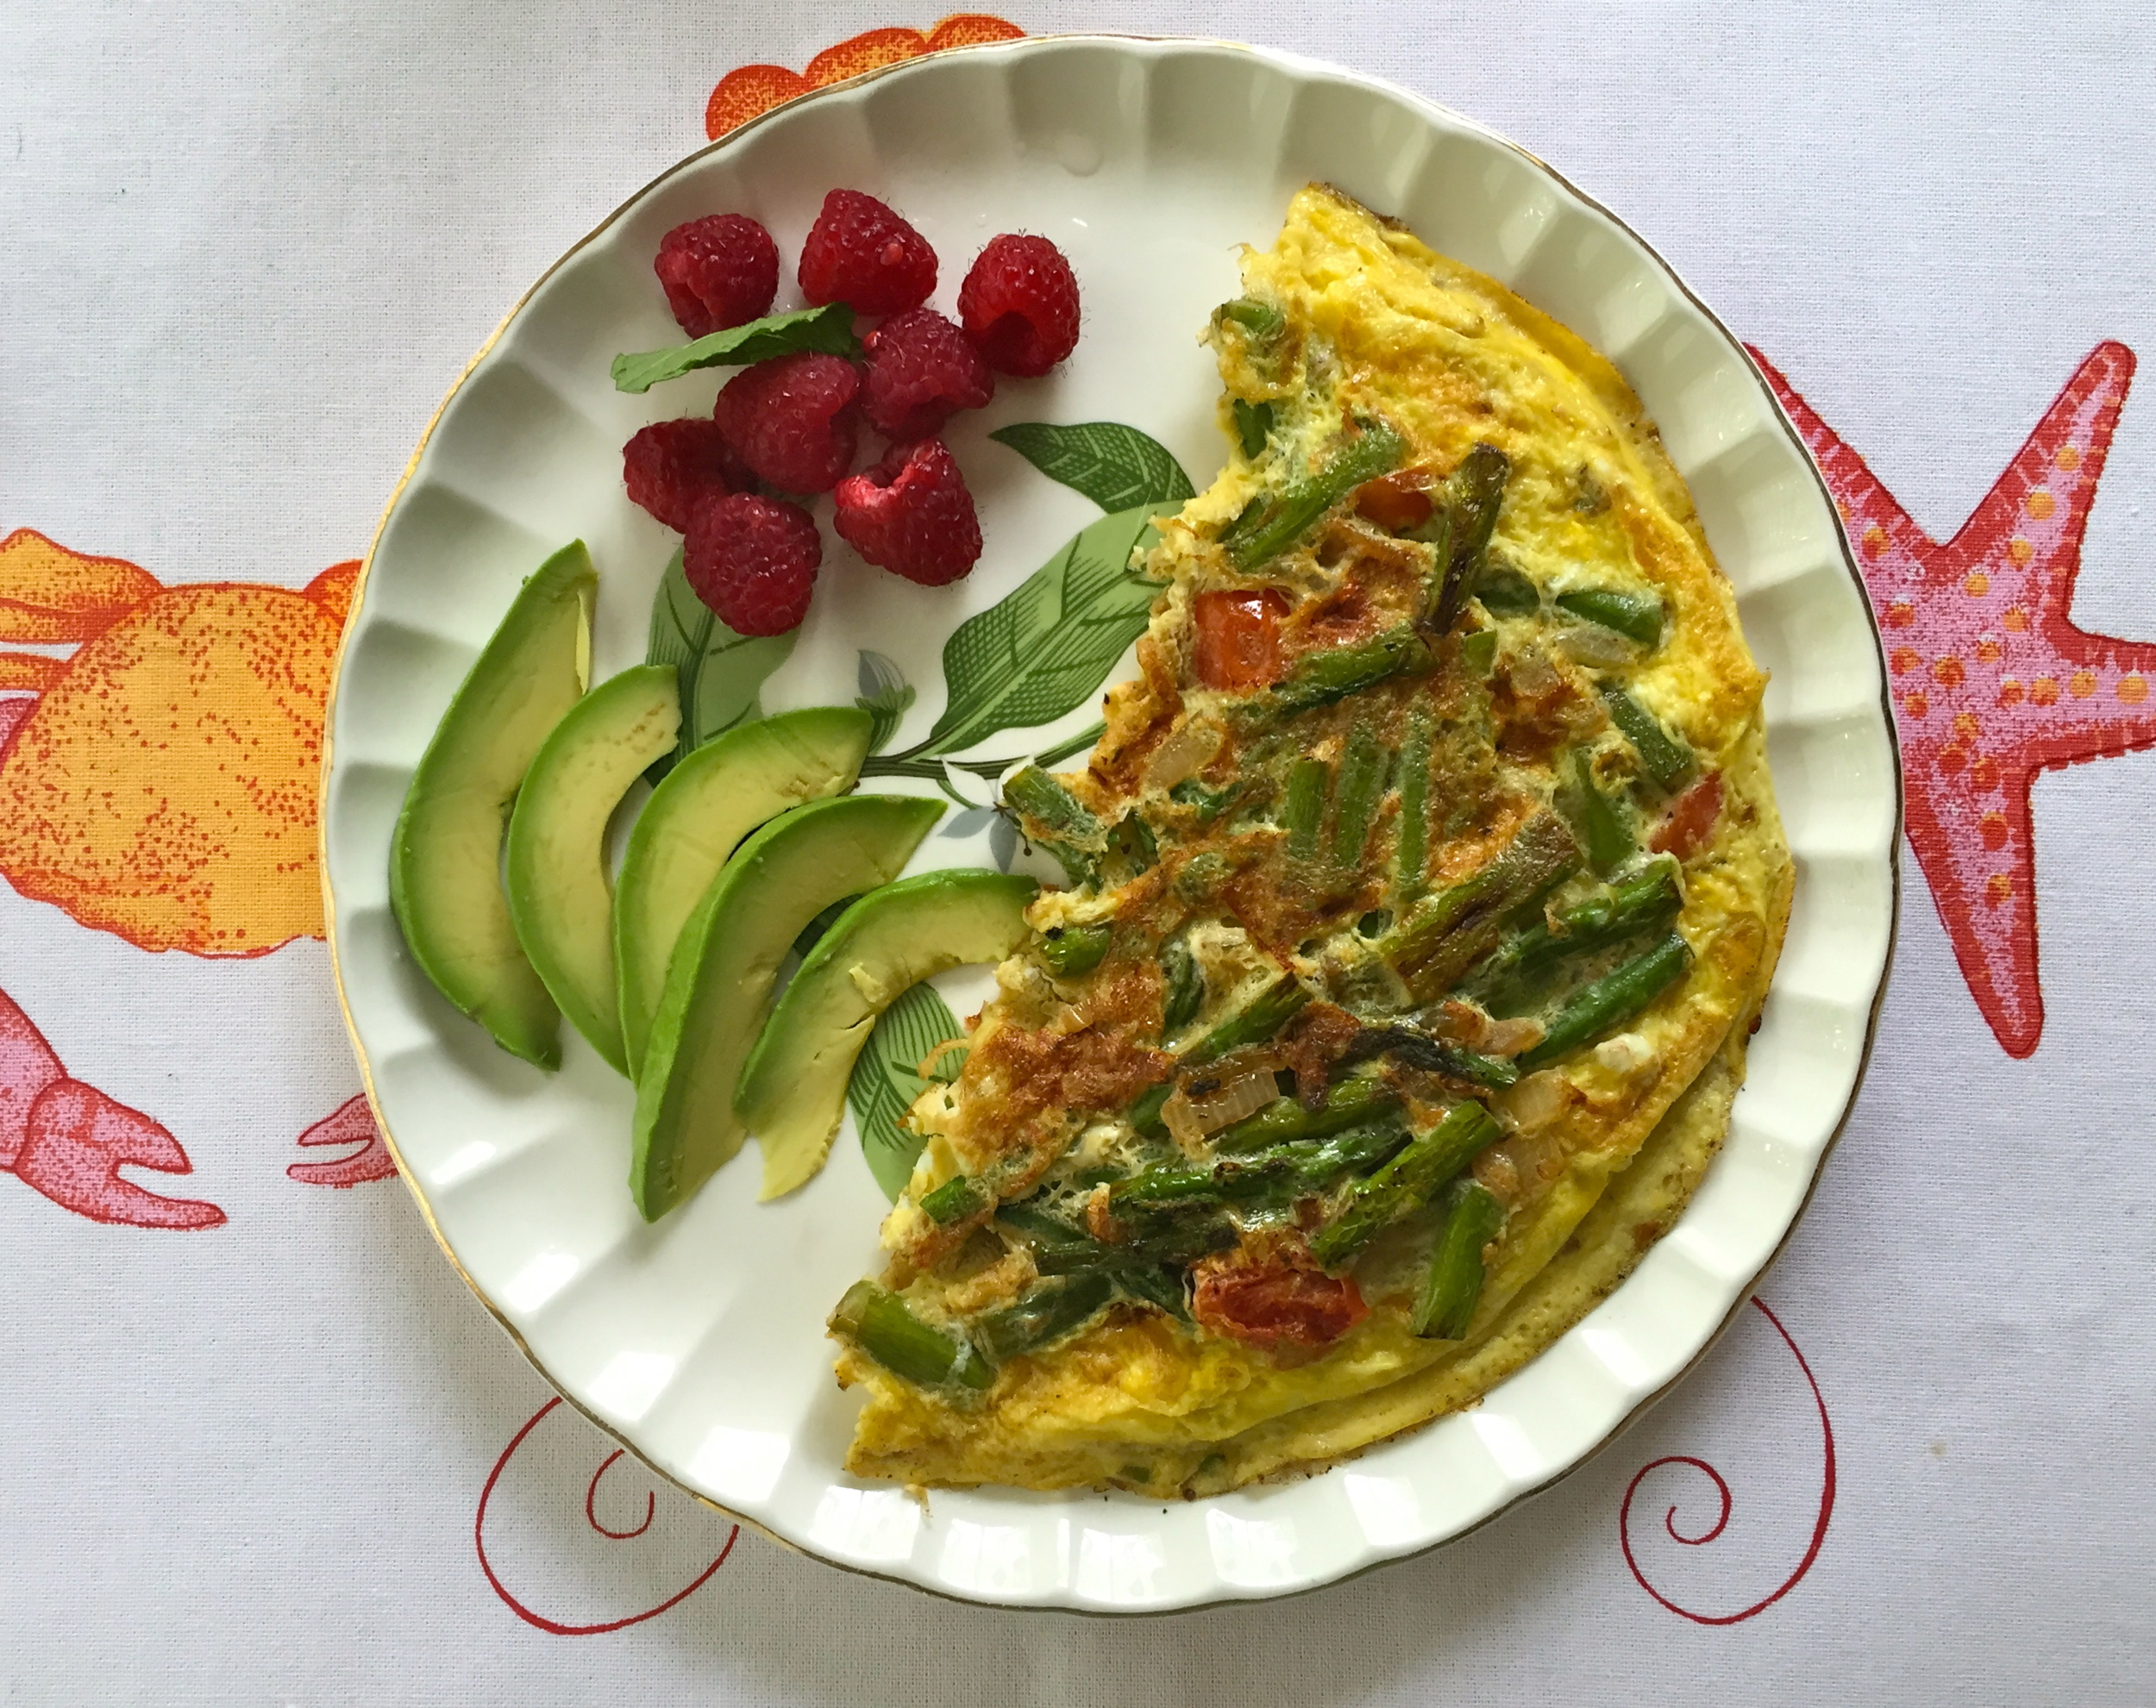 One of the best parts about being home? Mom cooking for me! Veggie omelette with asparagus and tomato, plus a side of avocado and raspberries.